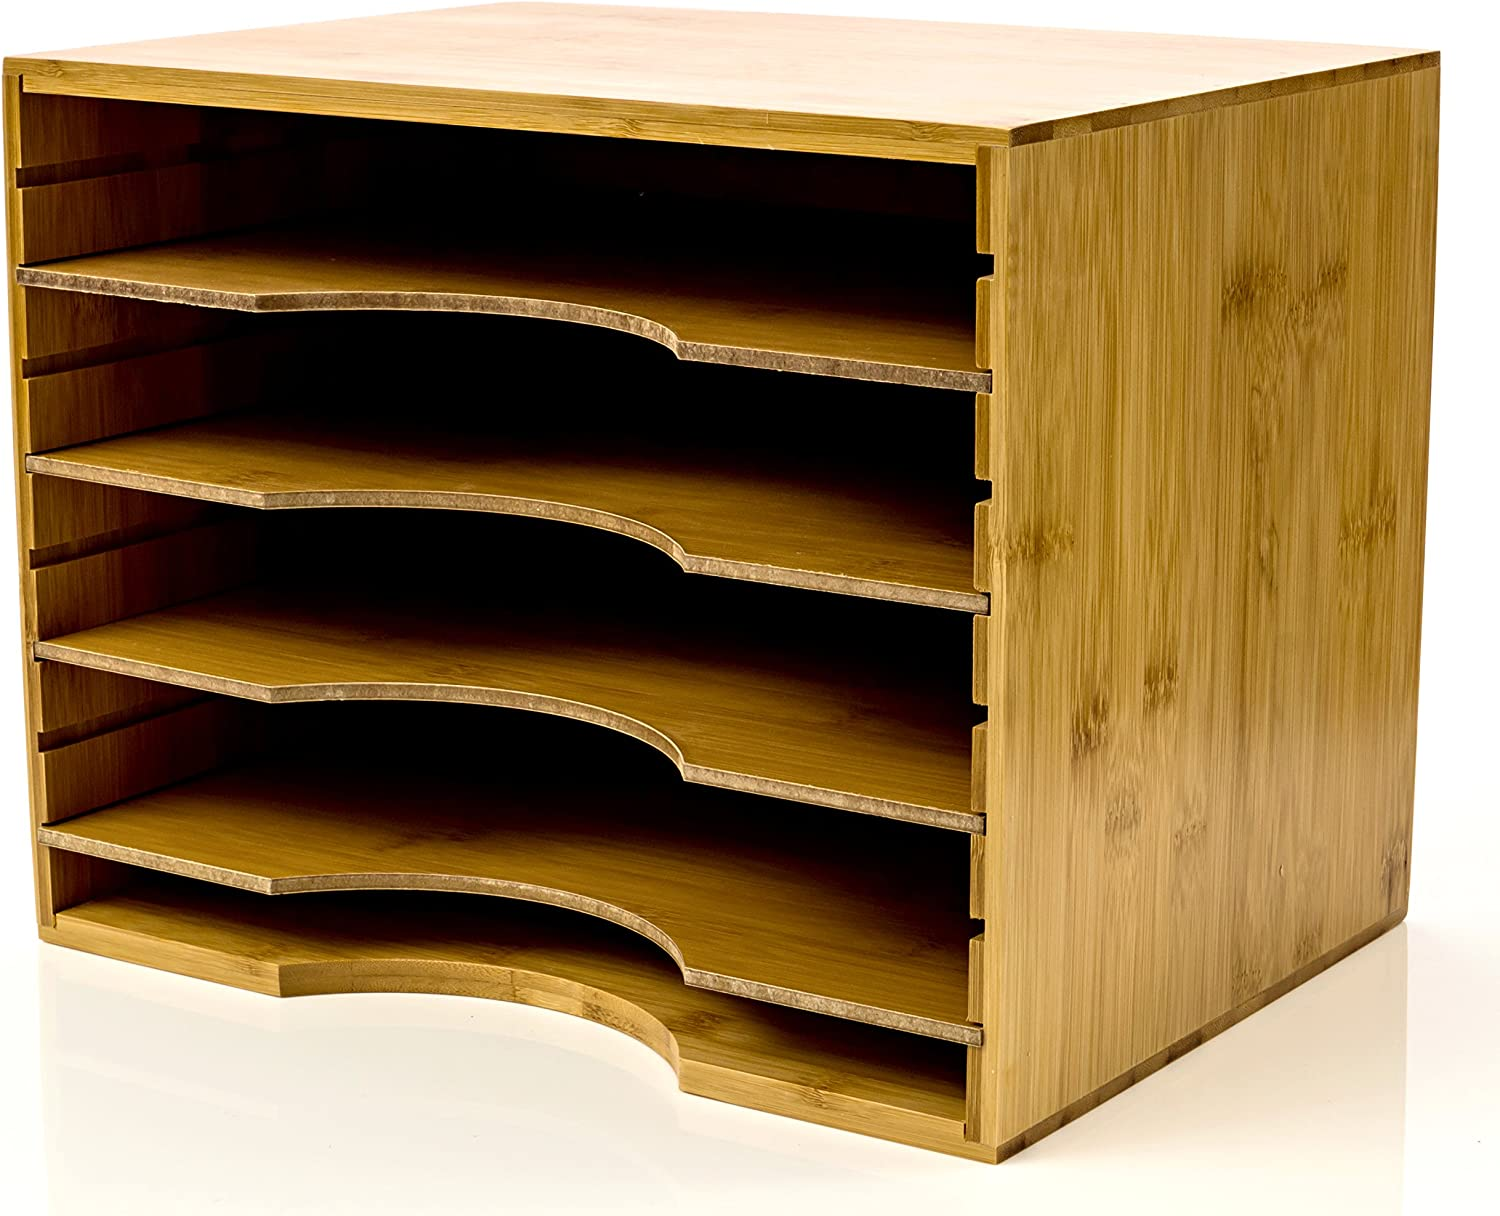 File Organizer Mail sorter, With Four Adjustable Dividers Natural Bamboo wood Color By Intriom Bamboo Collection (File Organizer)